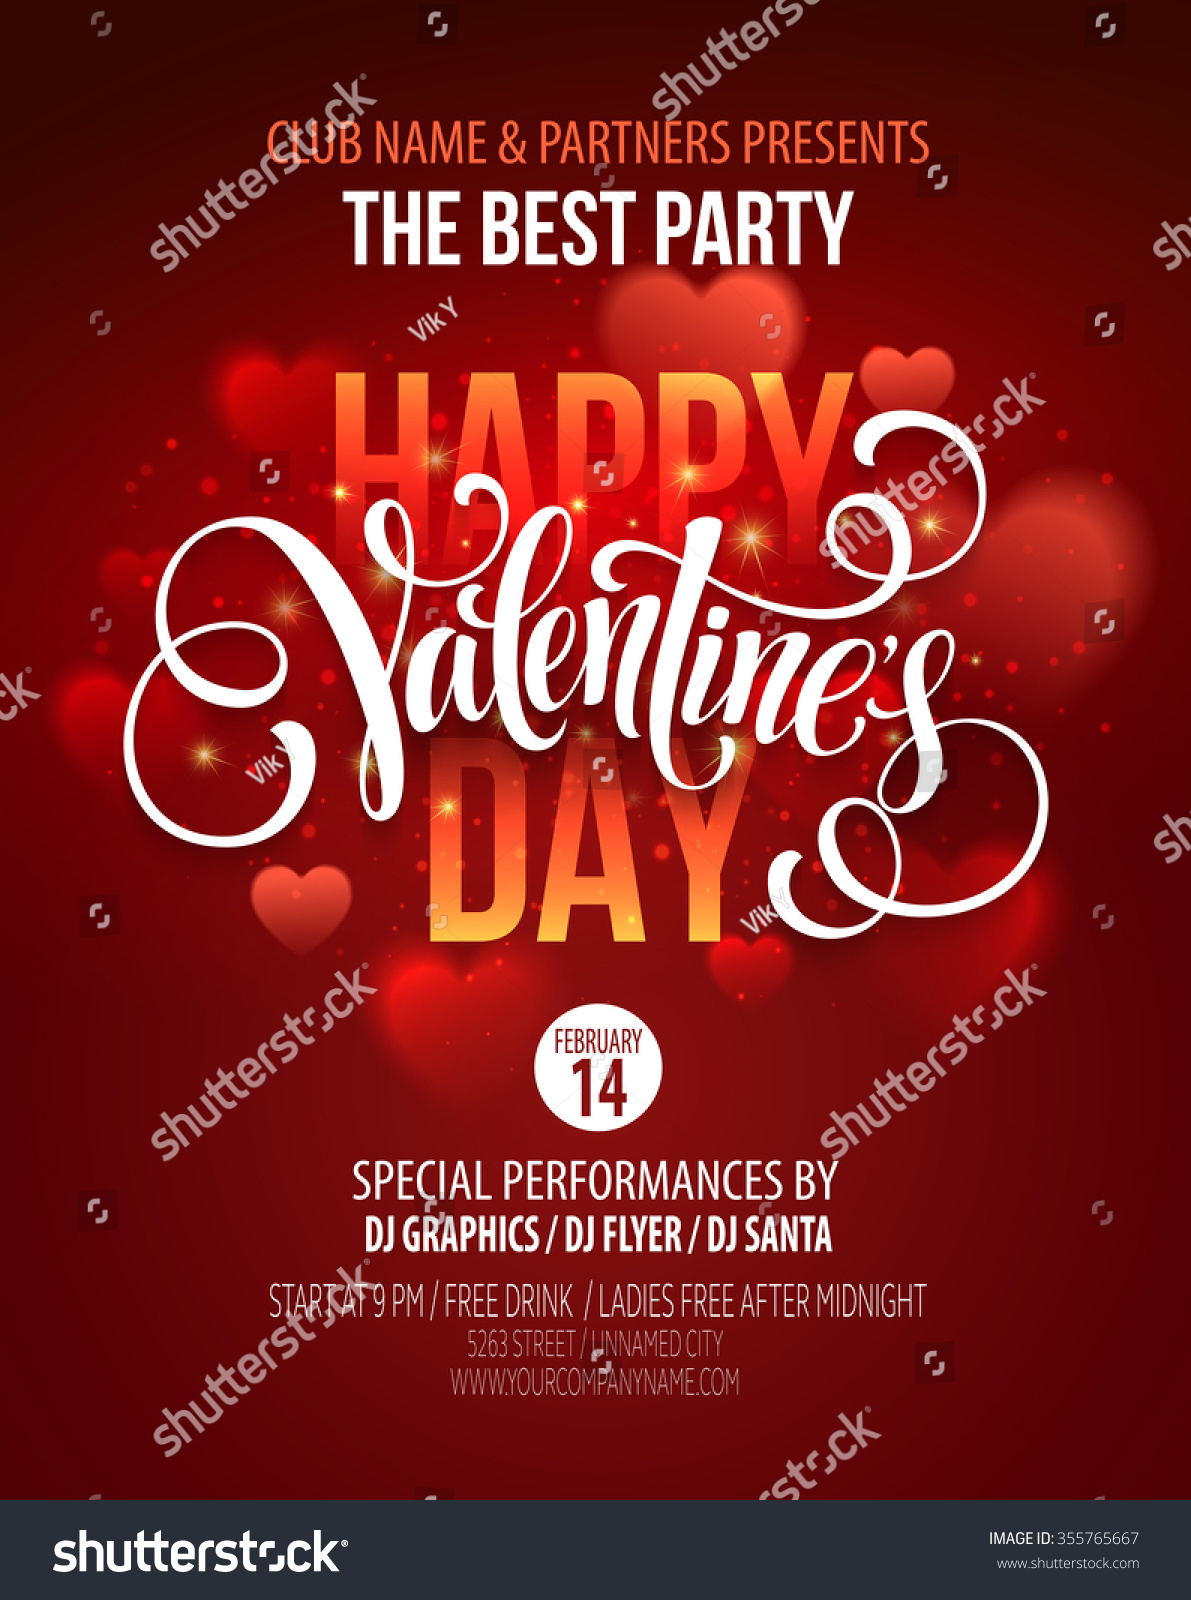 Valentines Day Party Poster Design Template Stock Vector (Royalty ...